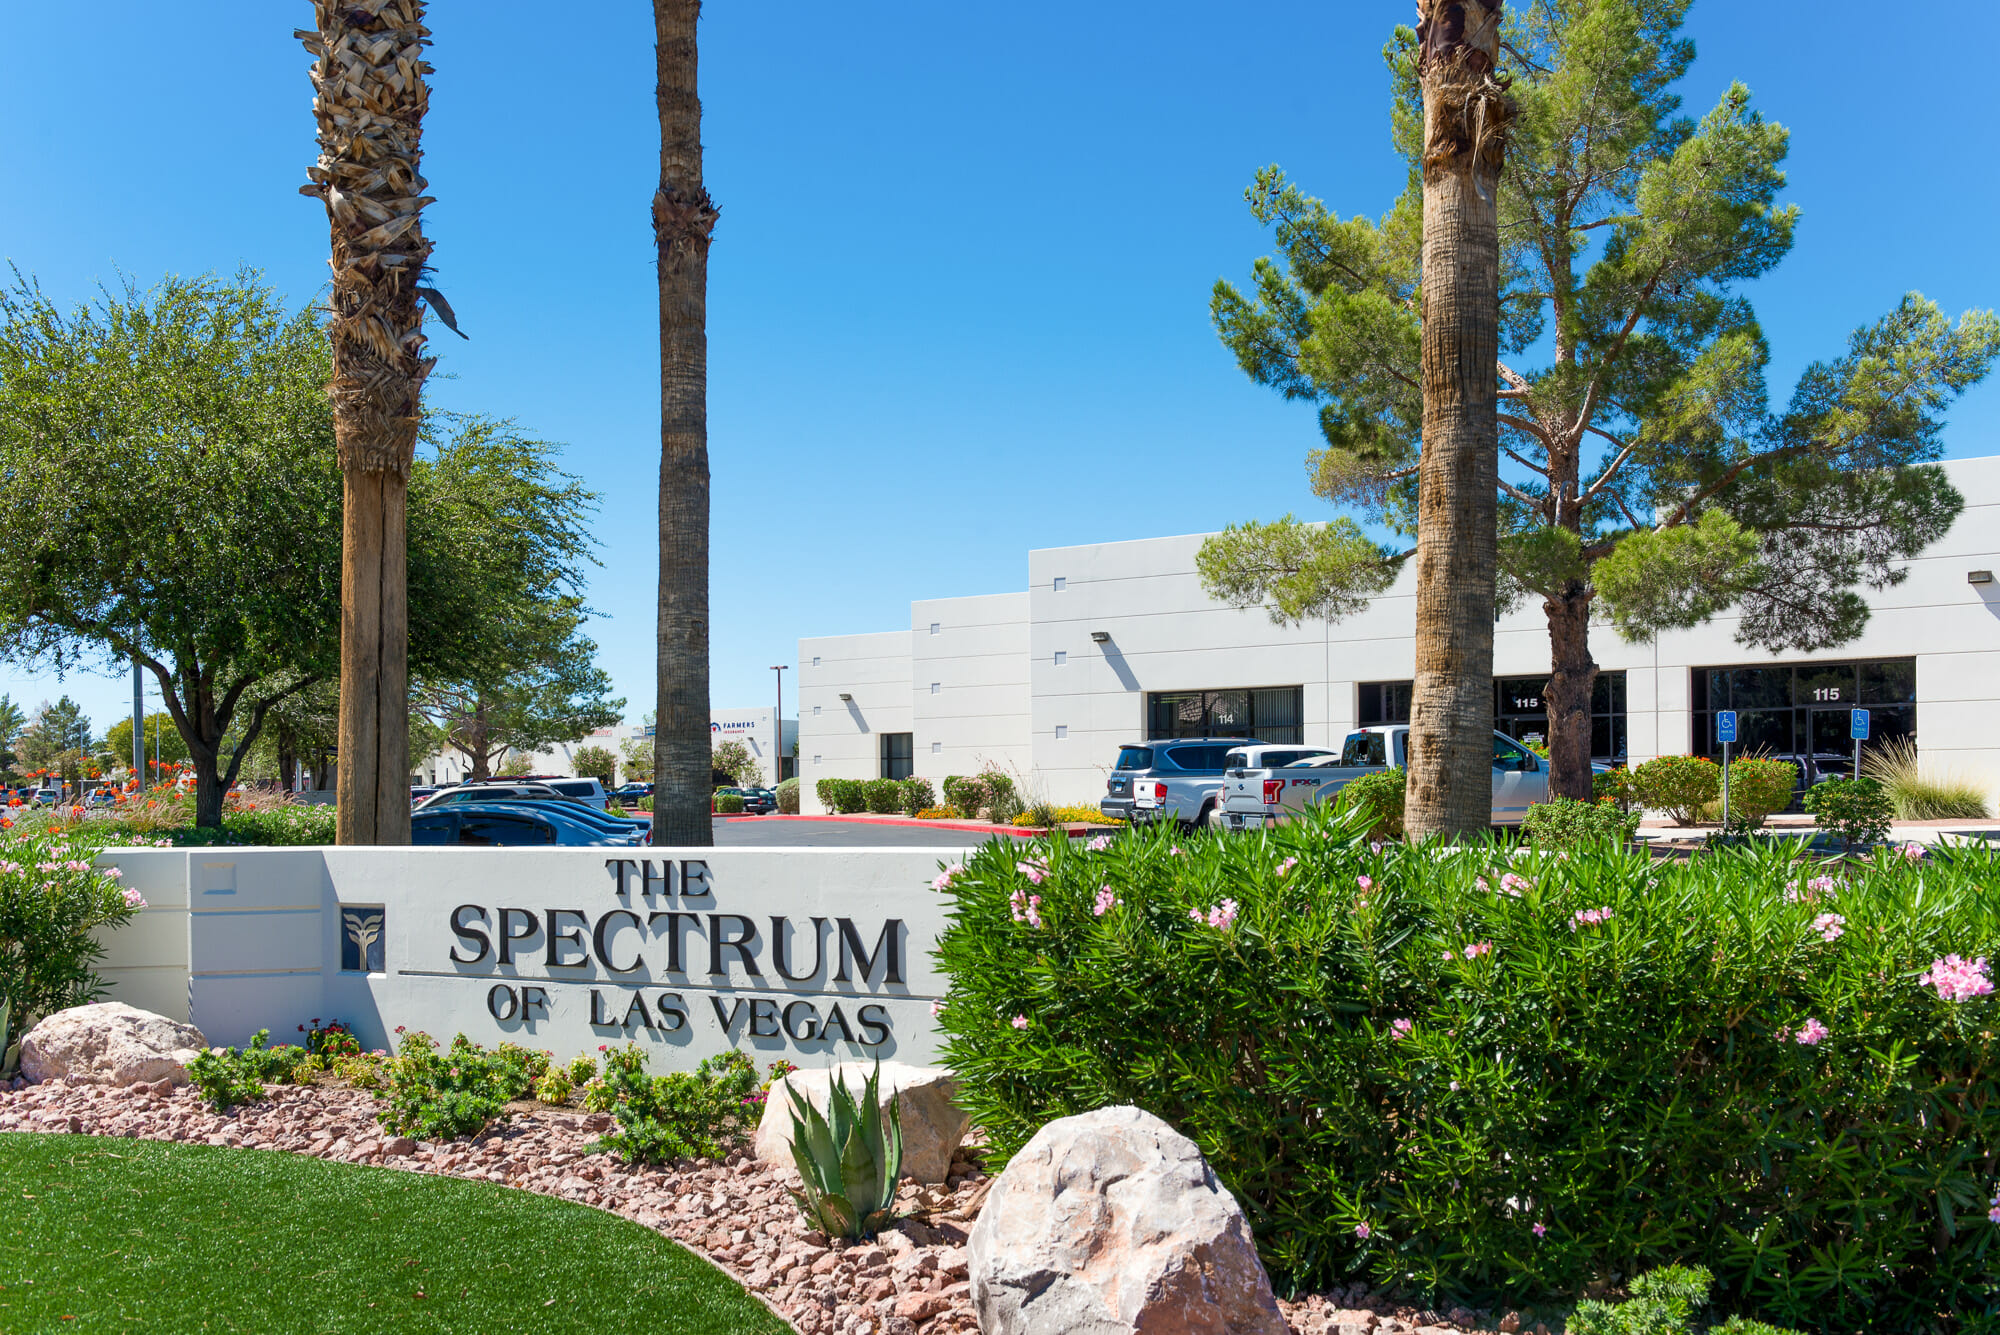 Monument sign for The Spectrum of Las Vegas